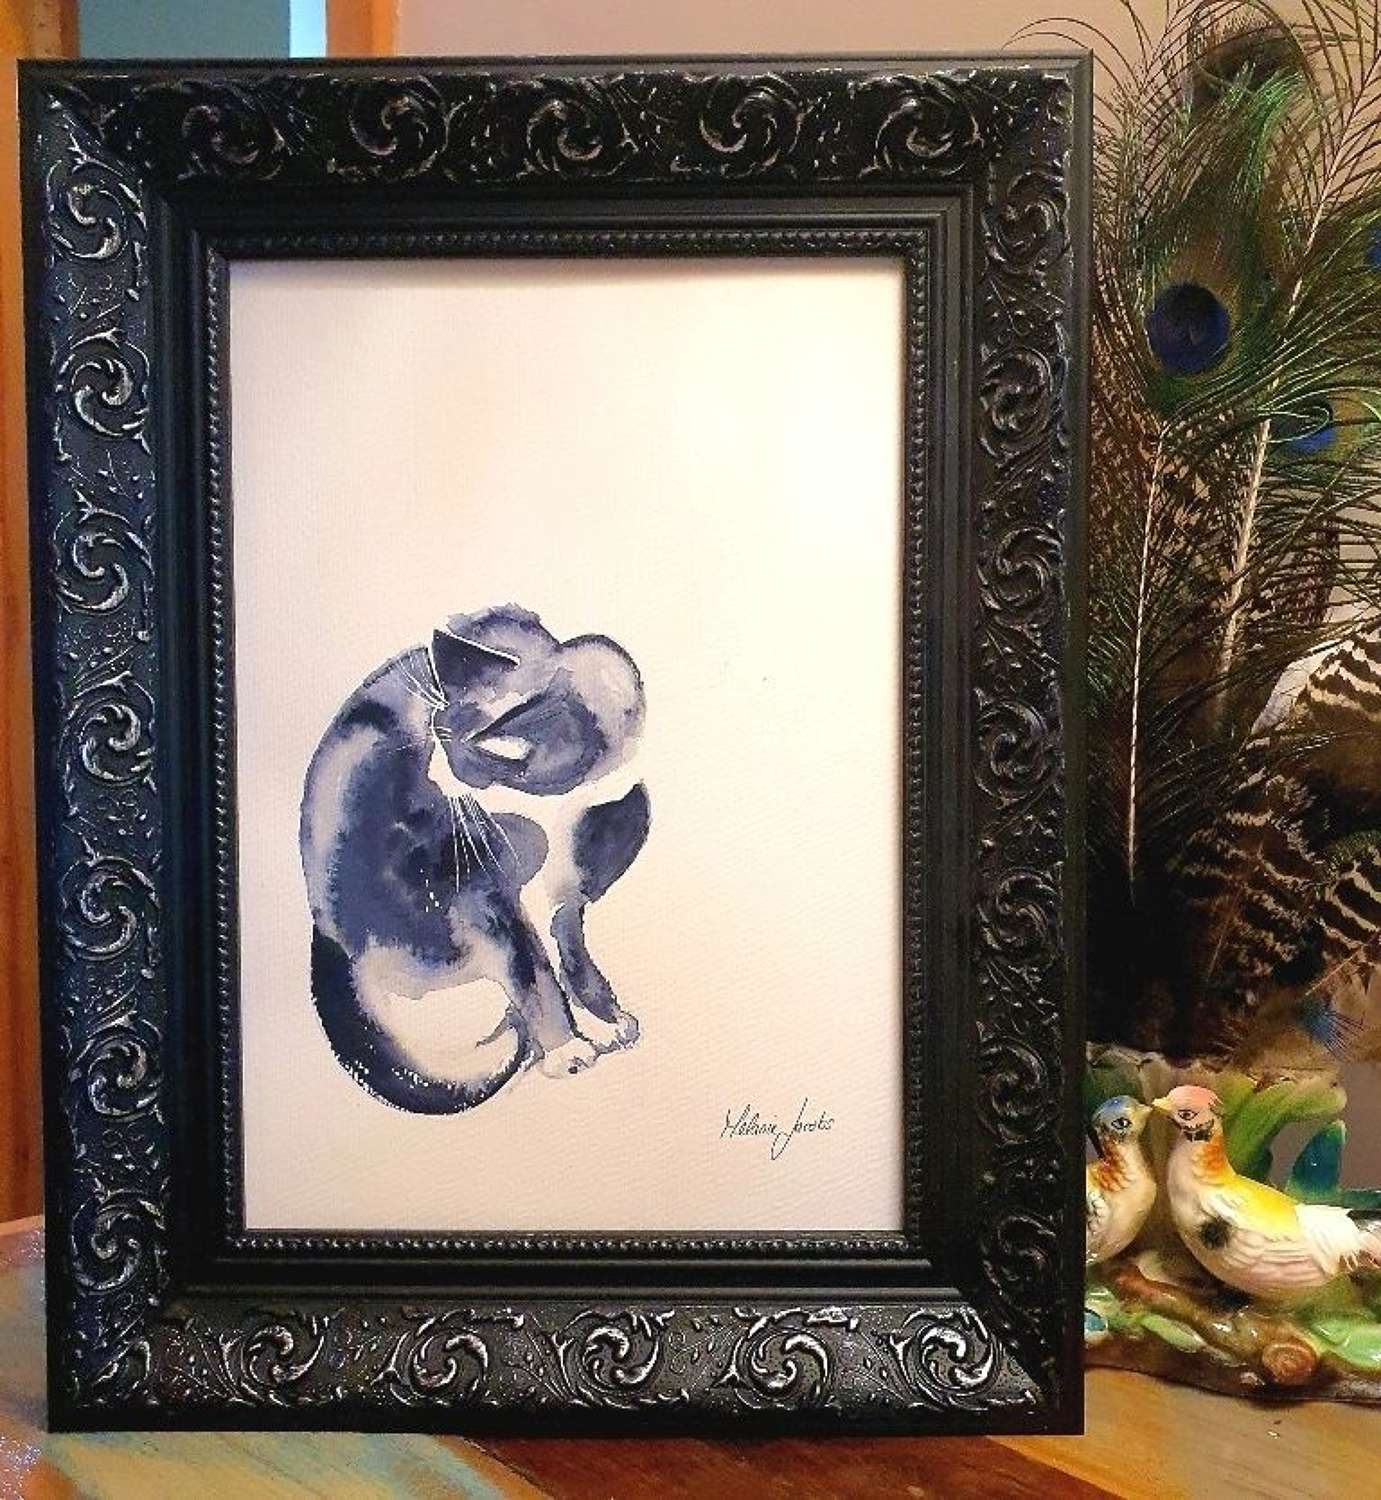 Suzu - Original Japanese Ink And Watercolour By Melanie Jacobs